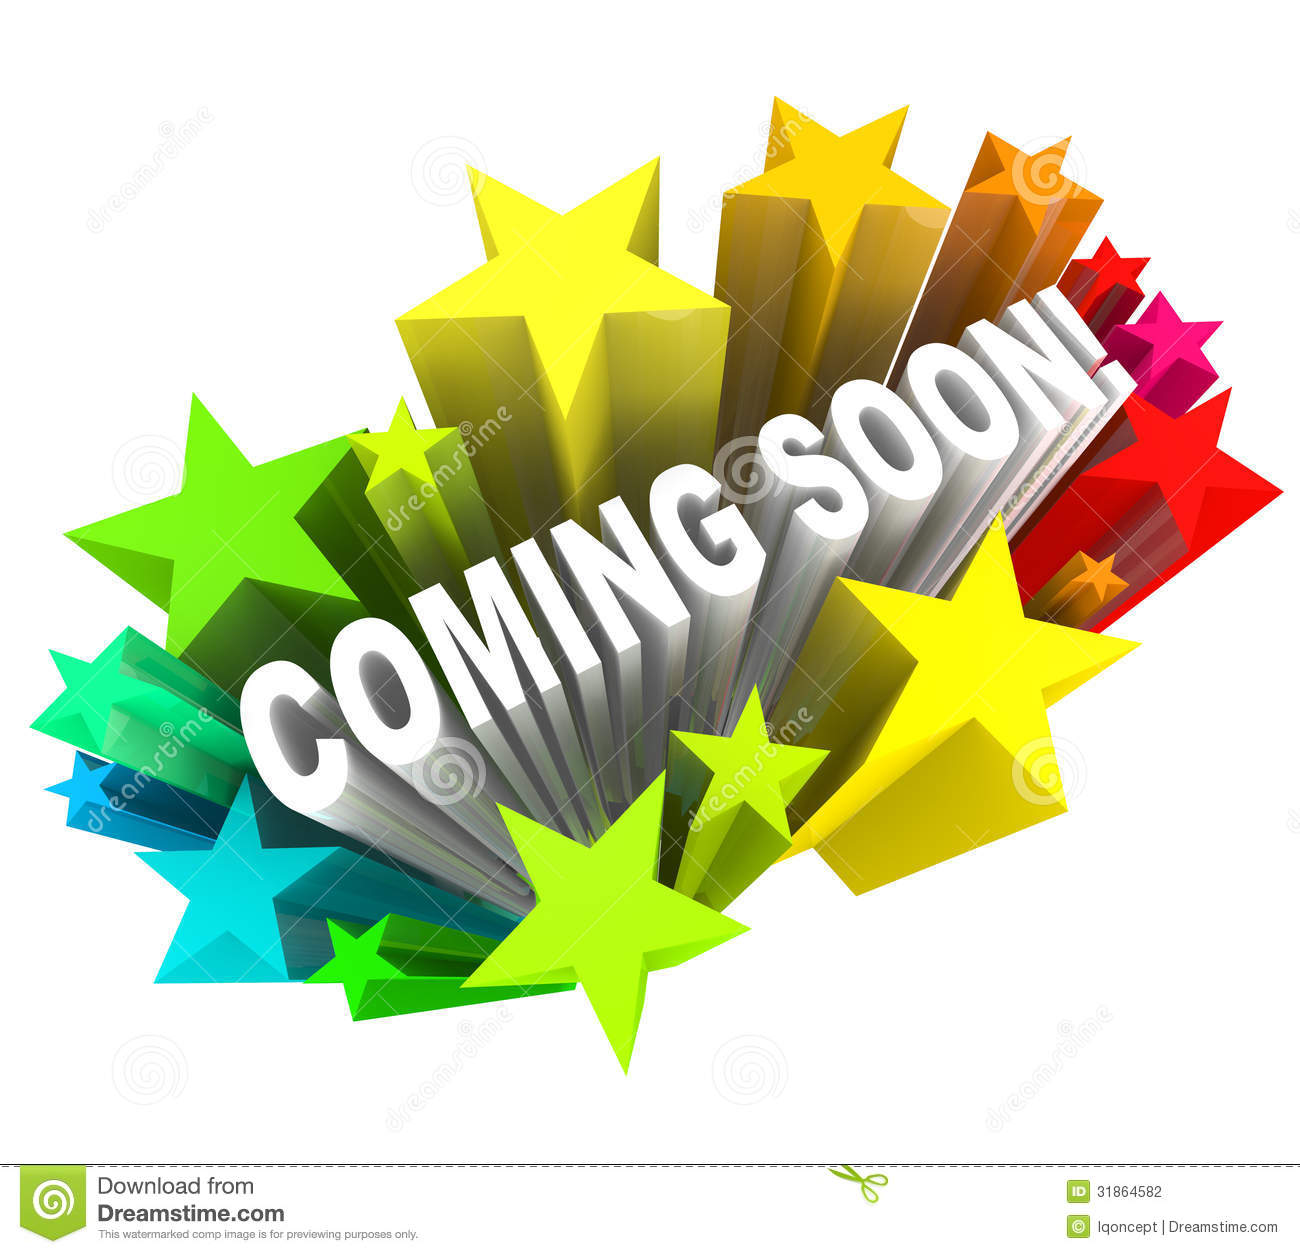 Coming Soon Announcement Of New Product Or Store Opening Stock Illustration Illustration Of Attraction Announce 31864582